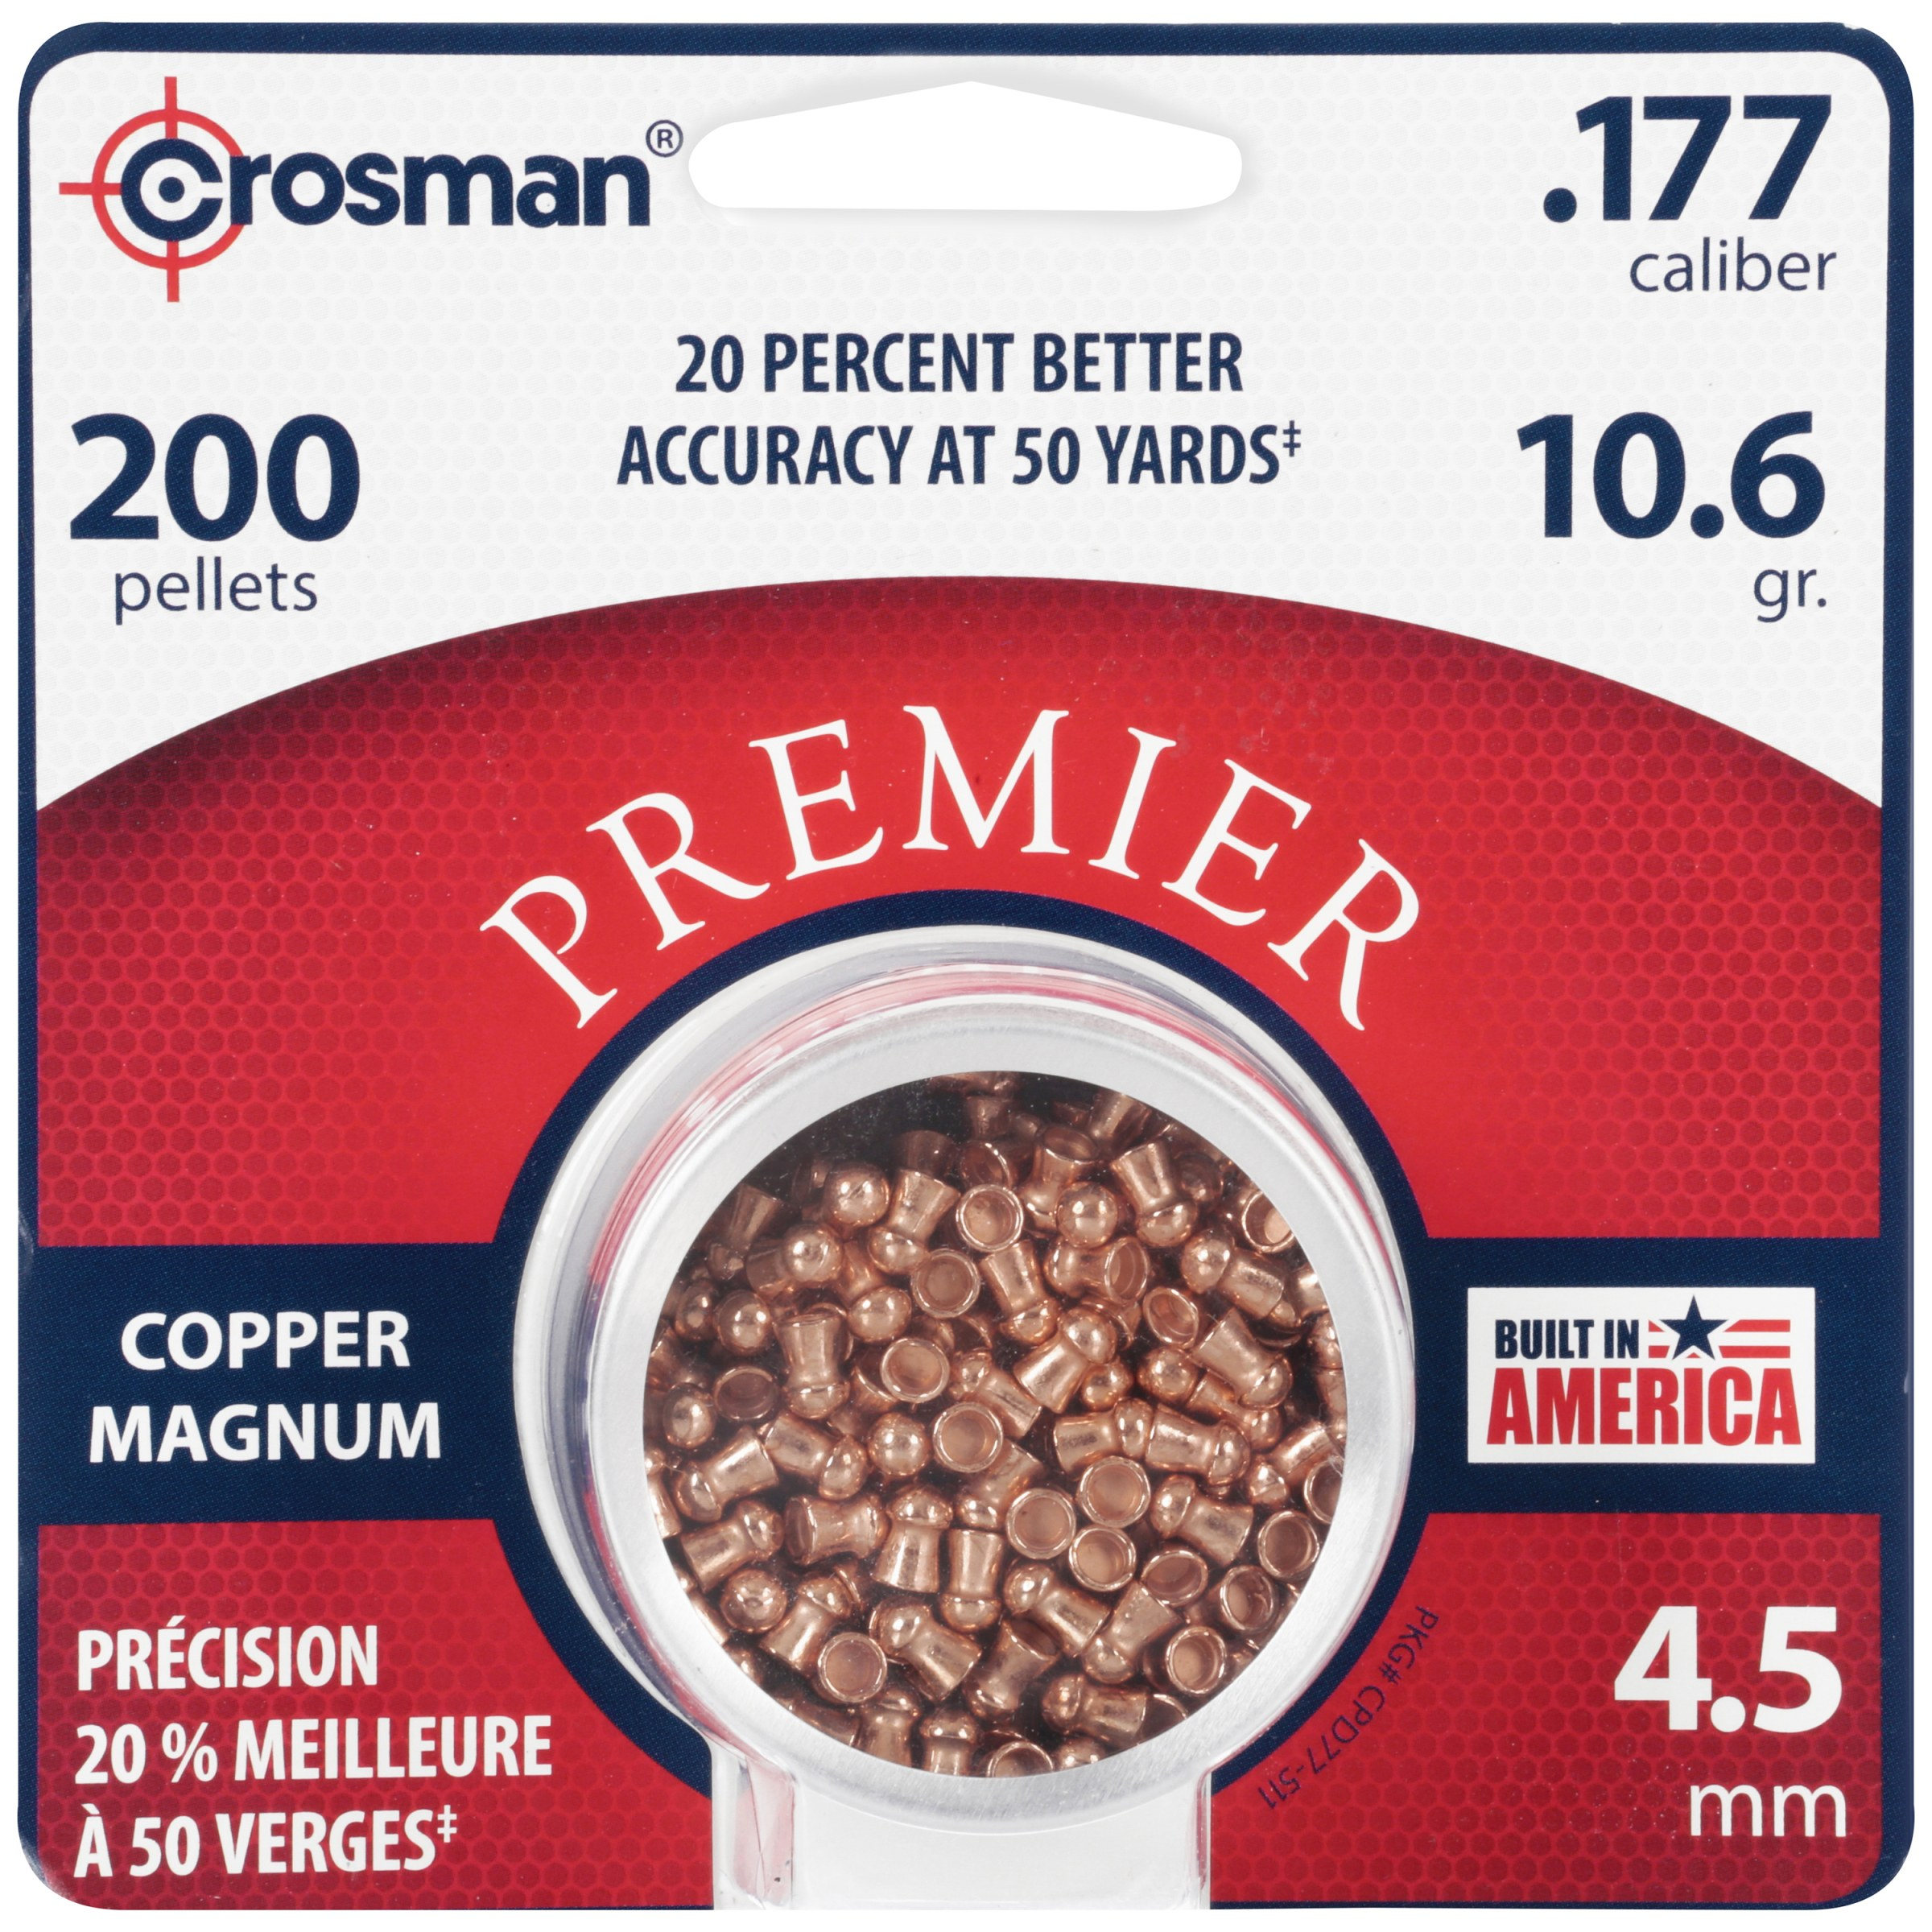 Crosman CopperMagnum DomedPellet .177 10.5Grain 200Ct. CPD77 by Crosman